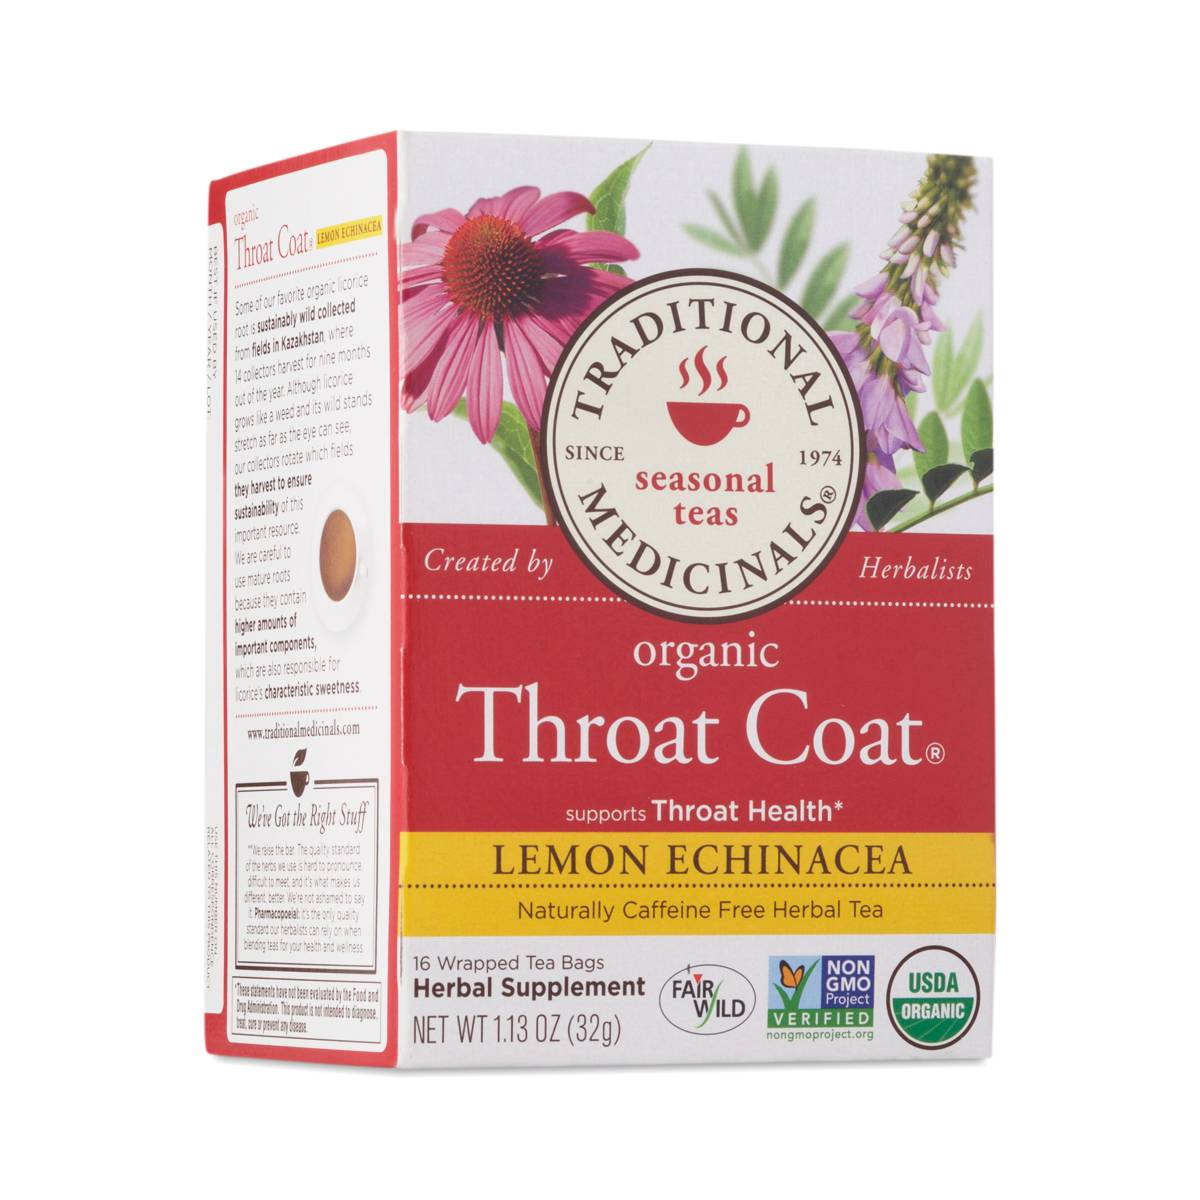 Traditional Medicinals Throat Coat® Lemon Echinacea Herbal Tea - Thrive Market